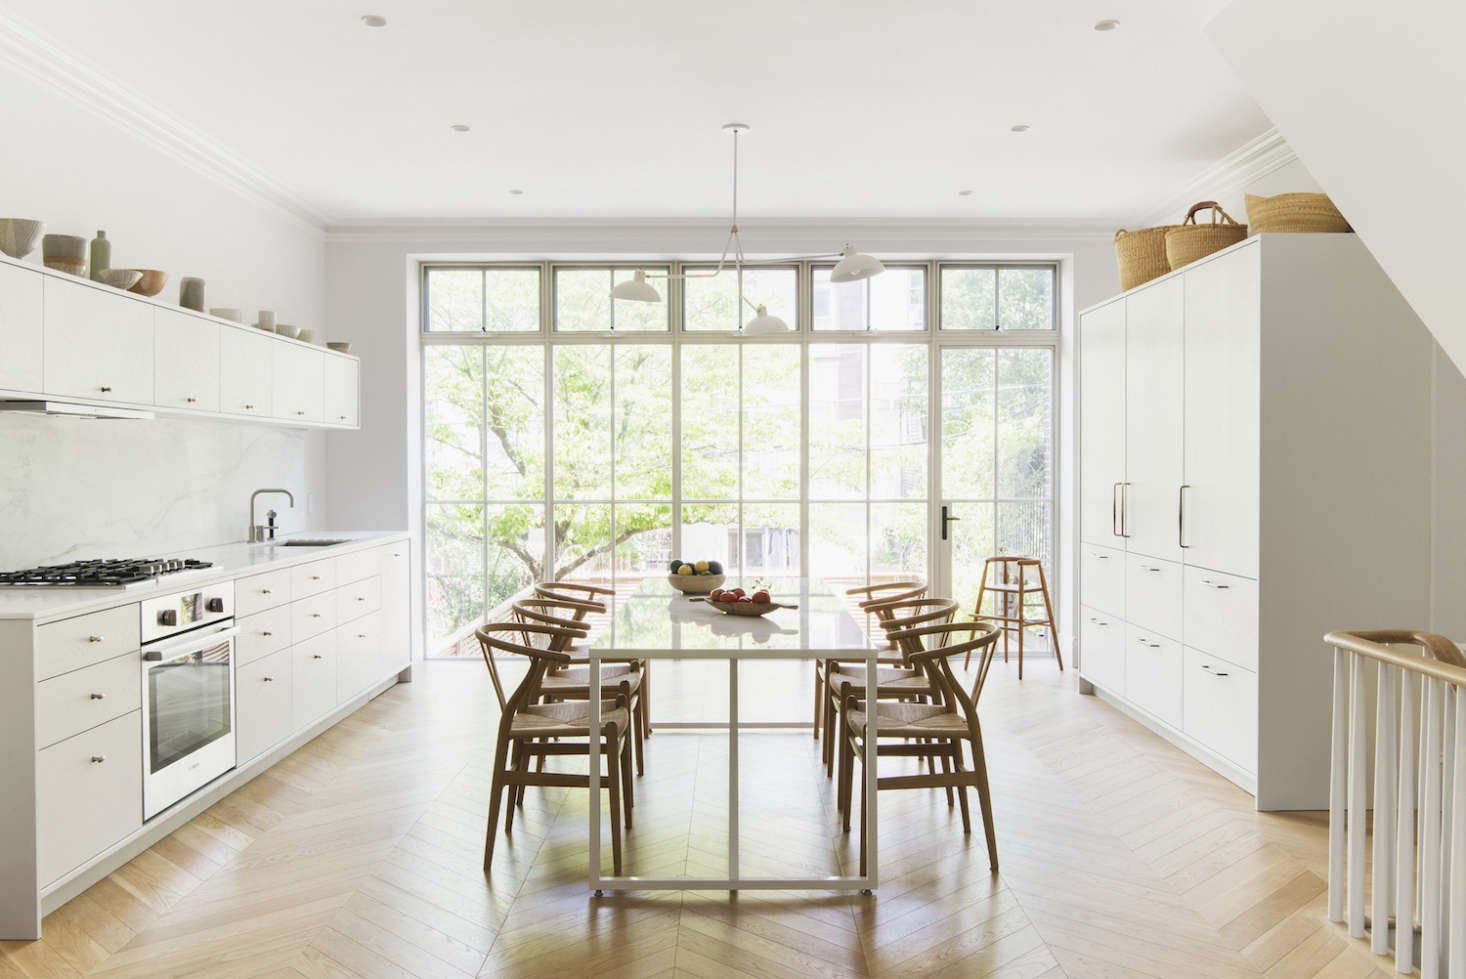 In a Brooklyn kitchen, Elizabeth Roberts designed a capacious, freestanding cabinet to accommodate the fridge; see more at A Warm, Minimalist Duplex in Brooklyn by Architect Elizabeth Roberts. Photograph by Dustin Aksland, courtesy of Elizabeth Roberts.